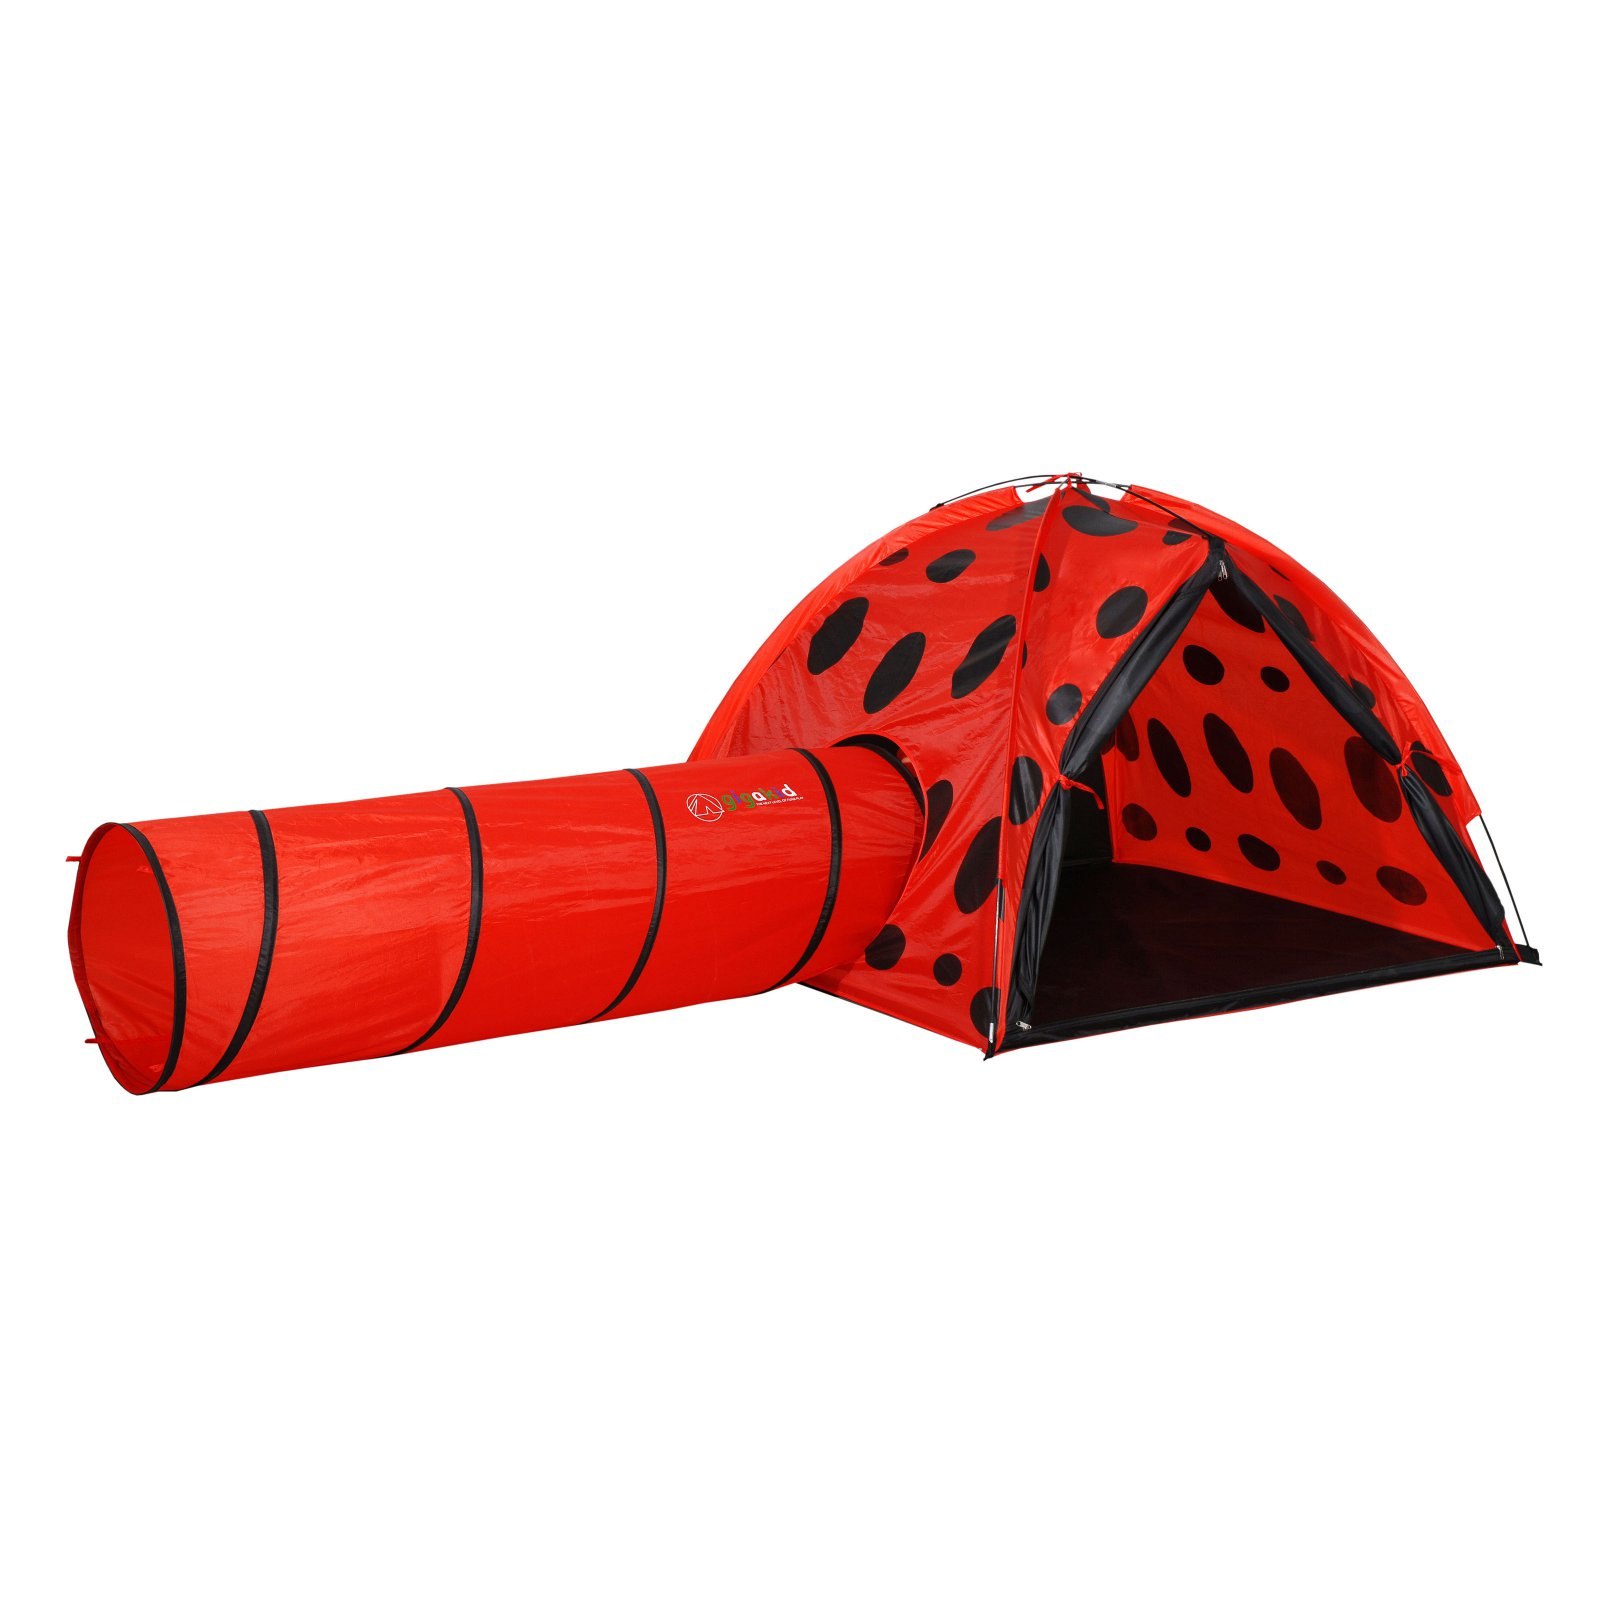 GigaTent Lily the Lady Bug Tent